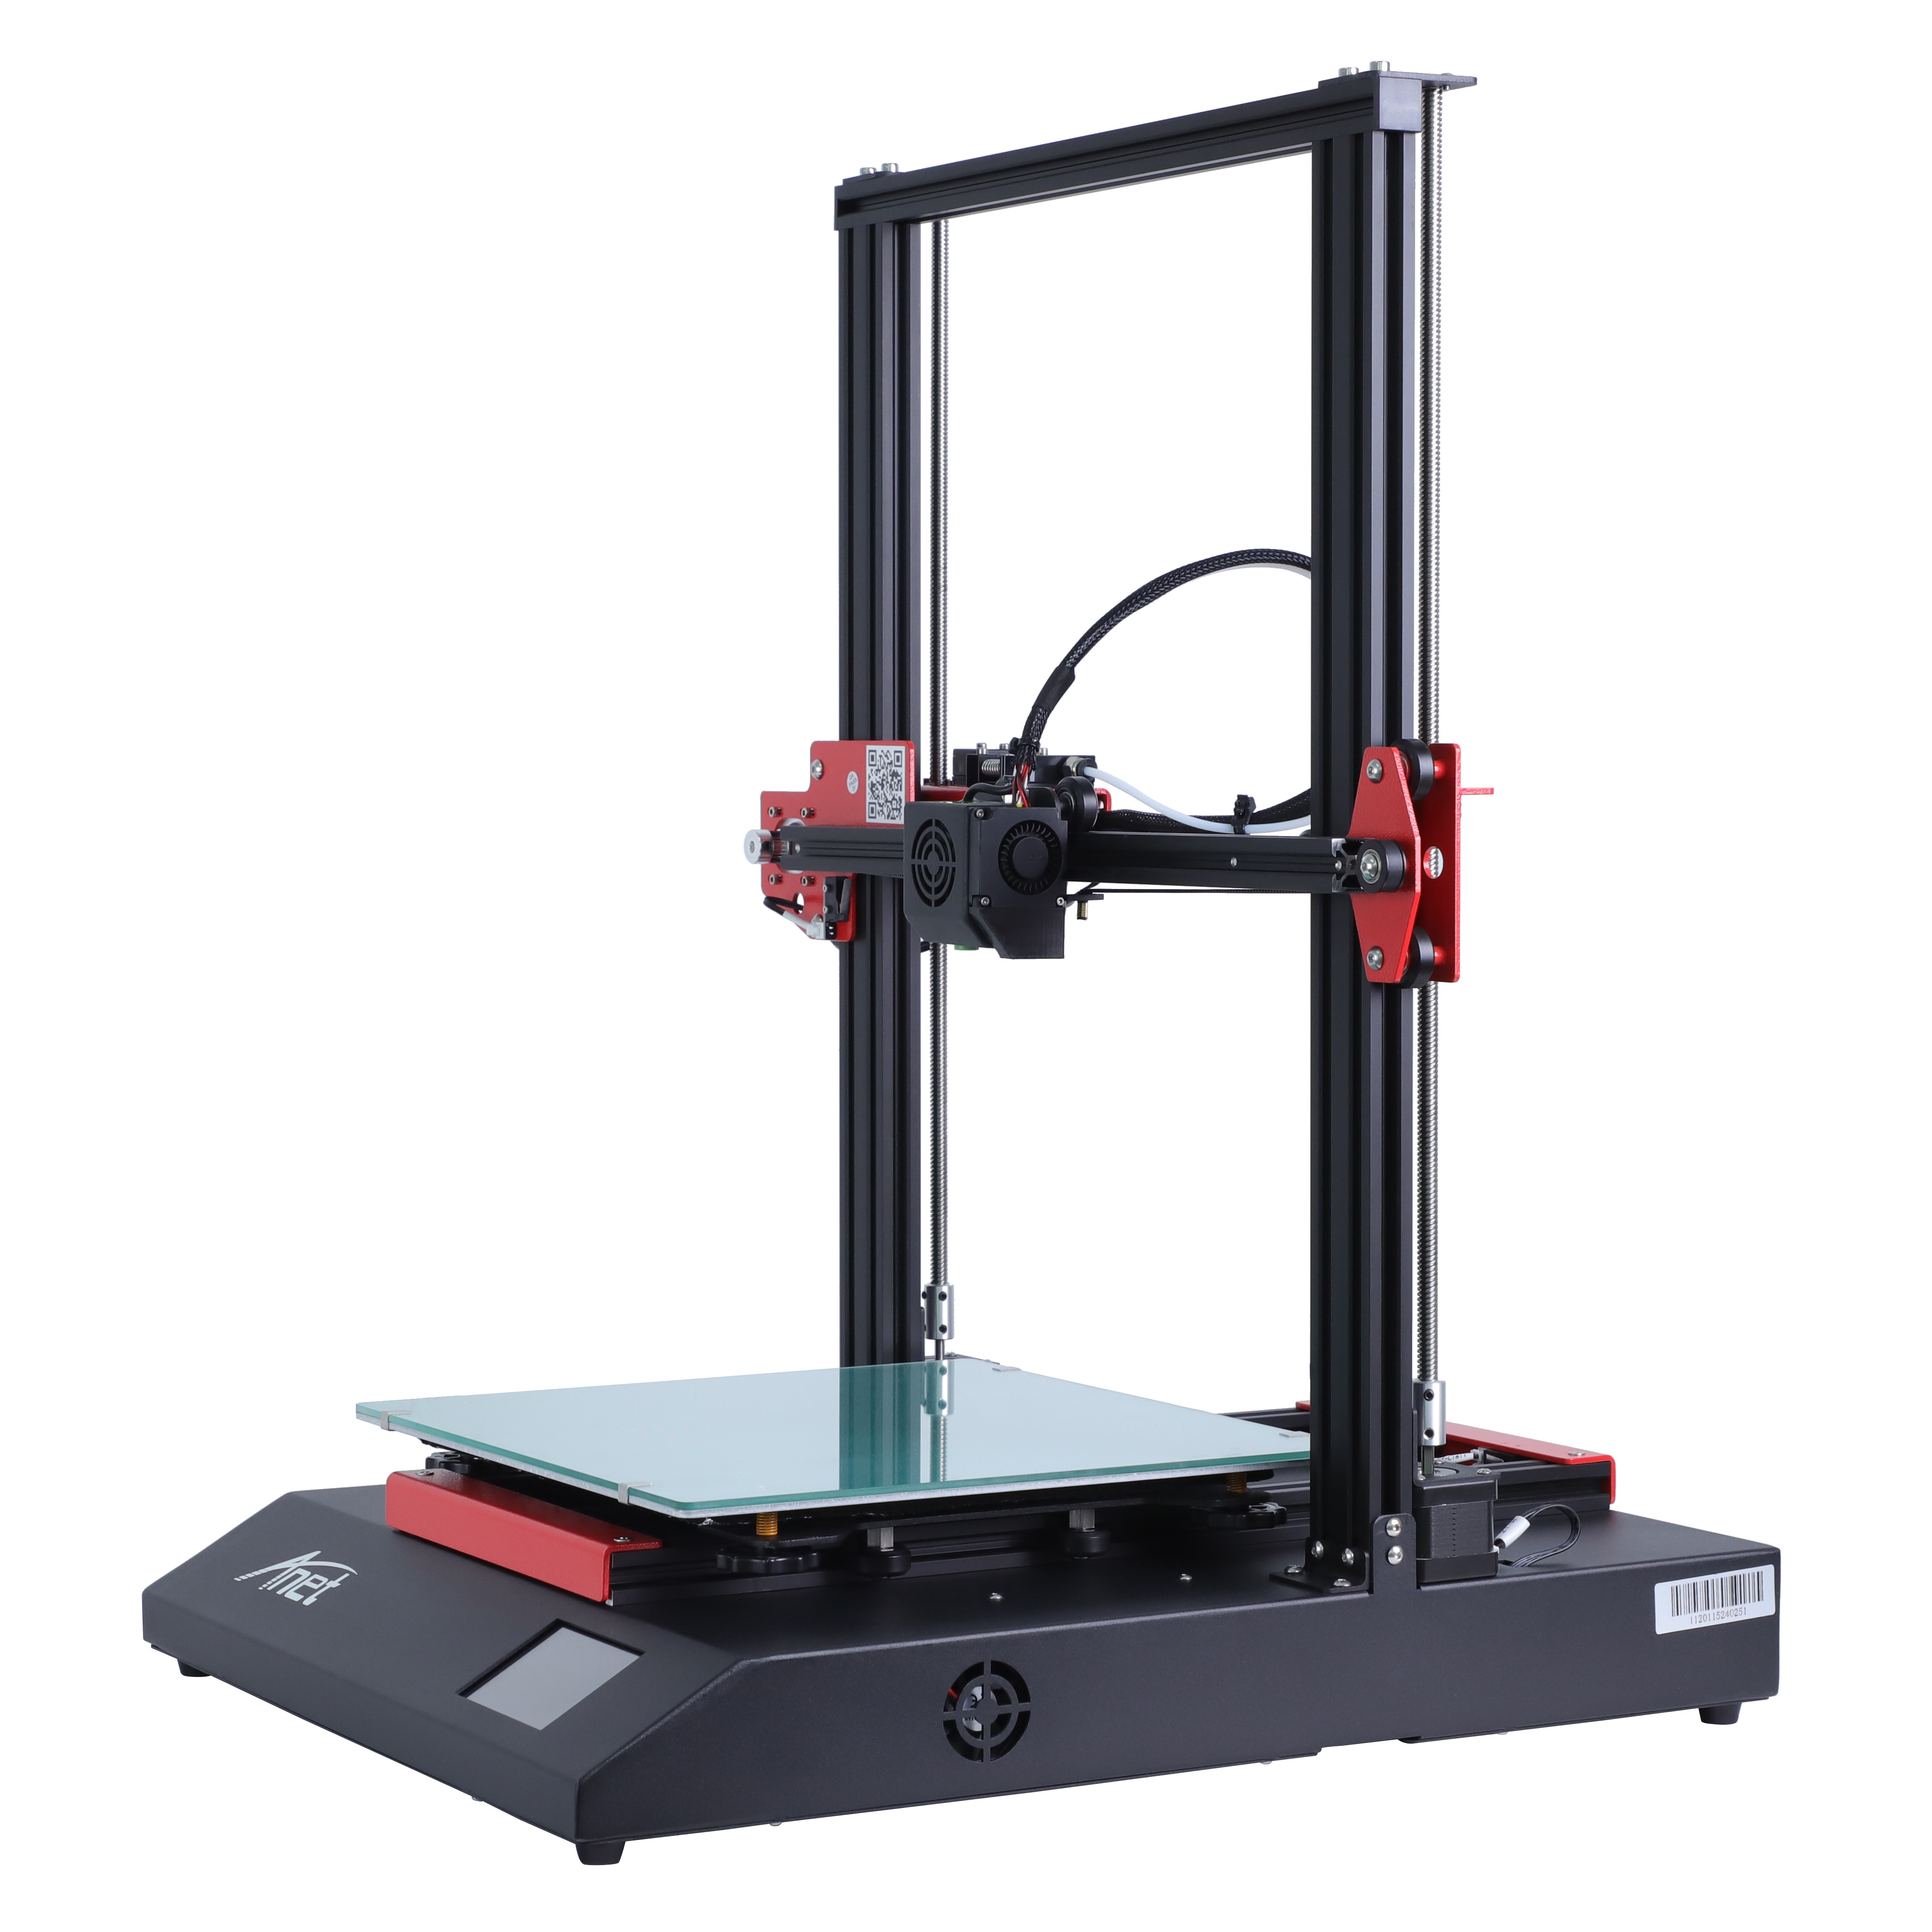 ANET A8 PLUS ET5 3D Printer with Auto Leveling and Offline Printing Feature